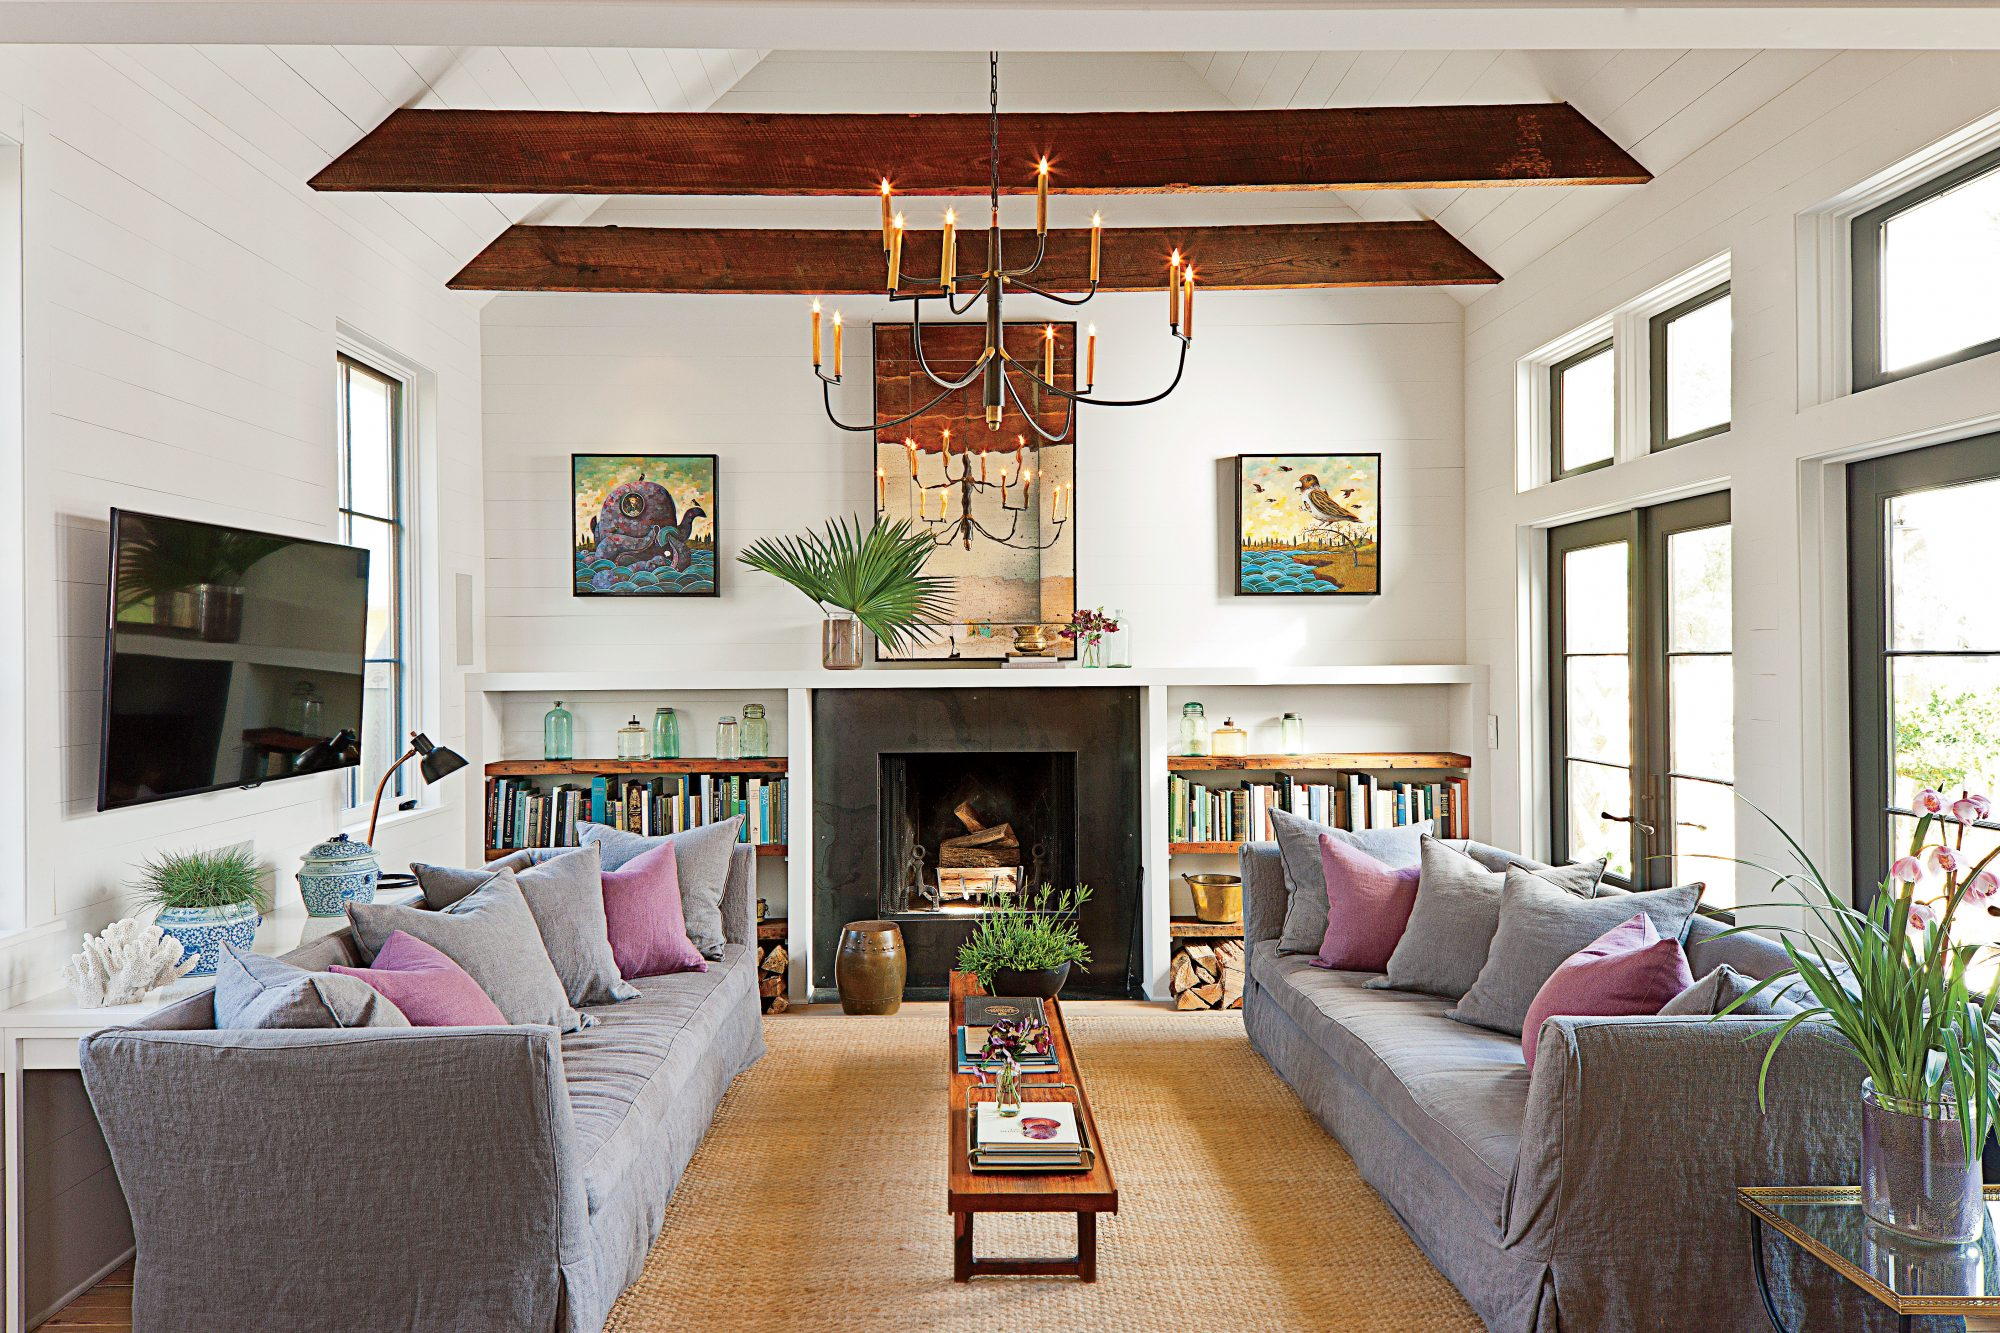 Family Room Design Pictures Part - 34: Inviting Family Room Design